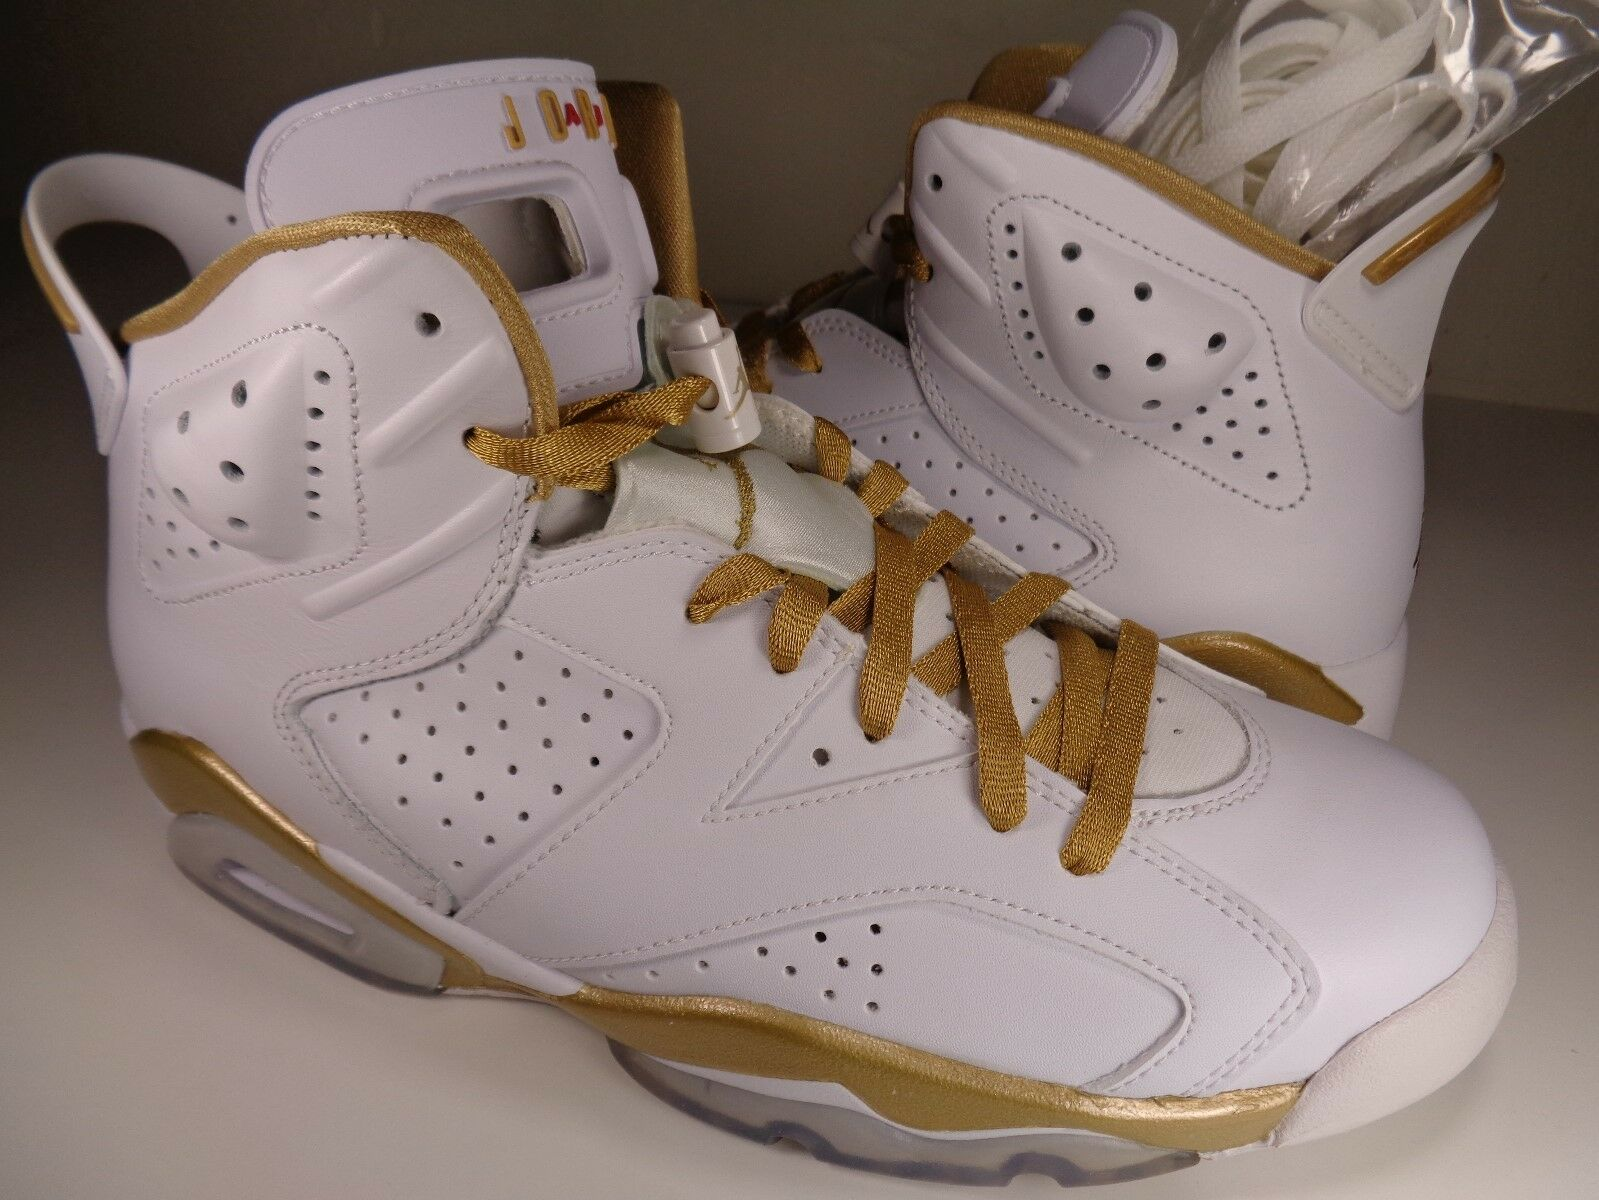 Nike Air Jordan 6 VI GMP golden Moments Package White gold SZ 9.5 (535357-935)